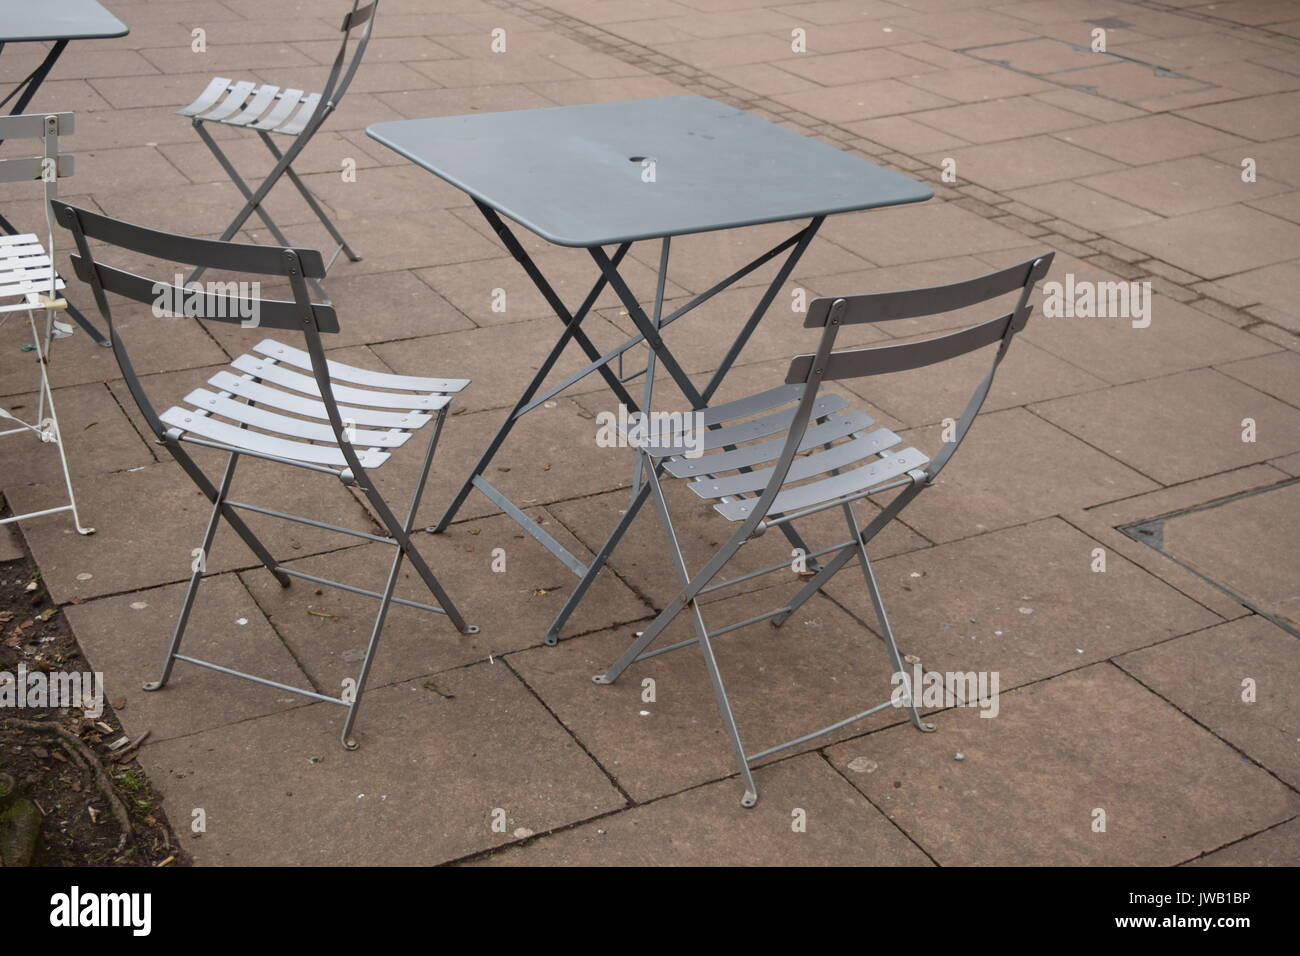 Modern metallic outdoor seating at a cafe Stock Photo